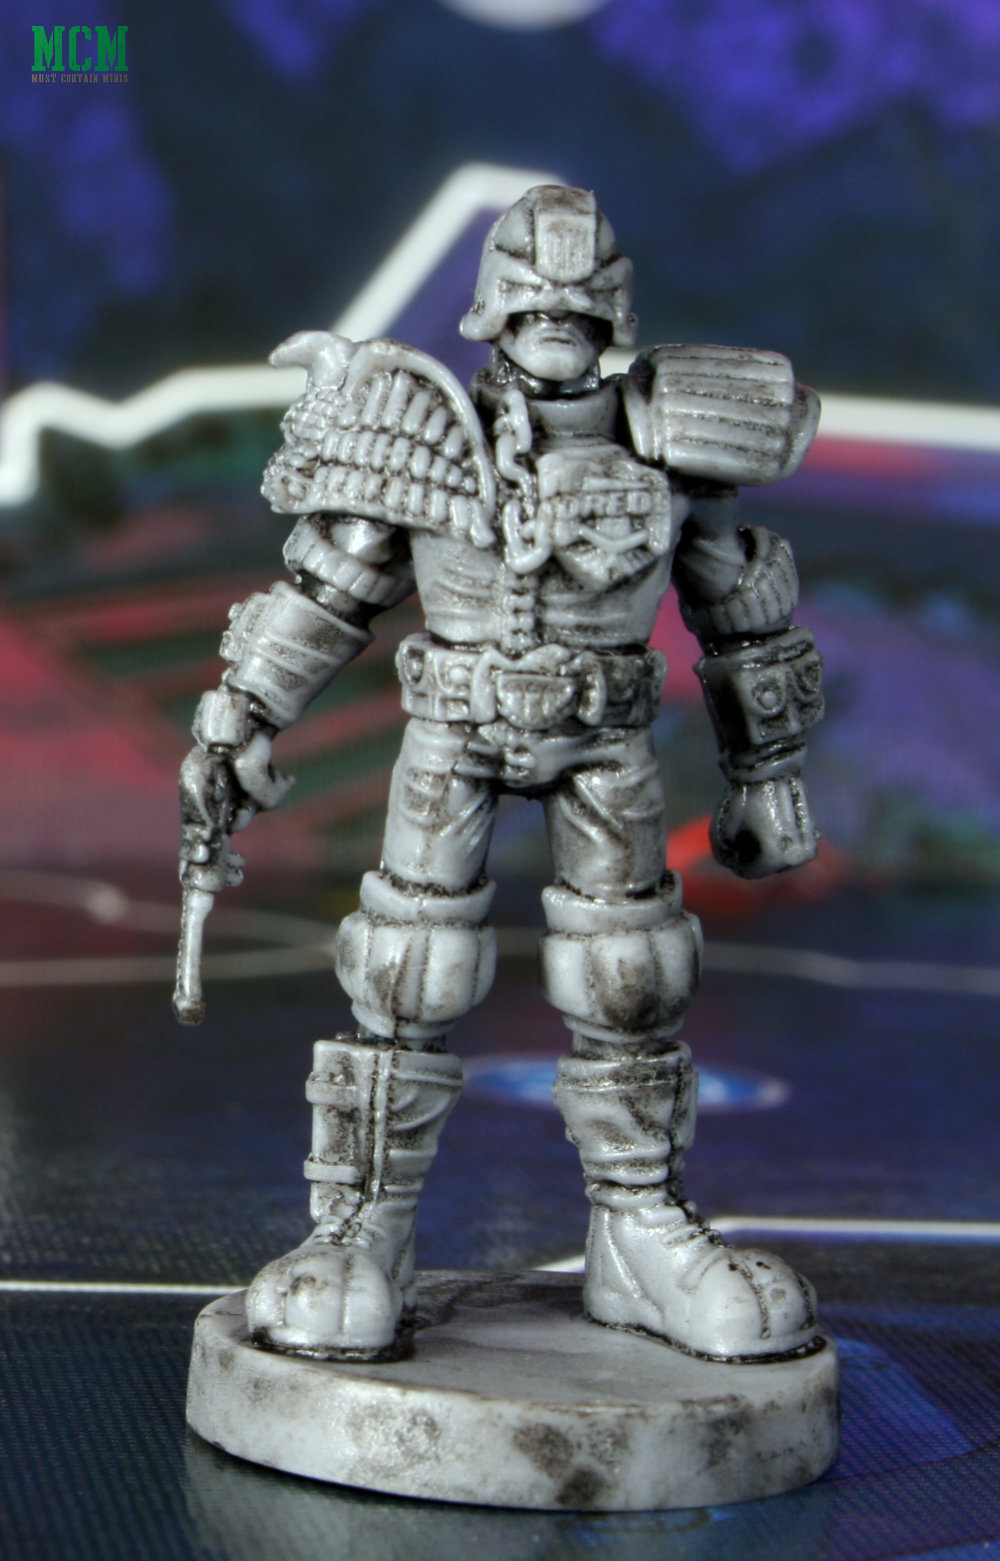 Judge Dredd Board Game Miniature close up picture - review of model details